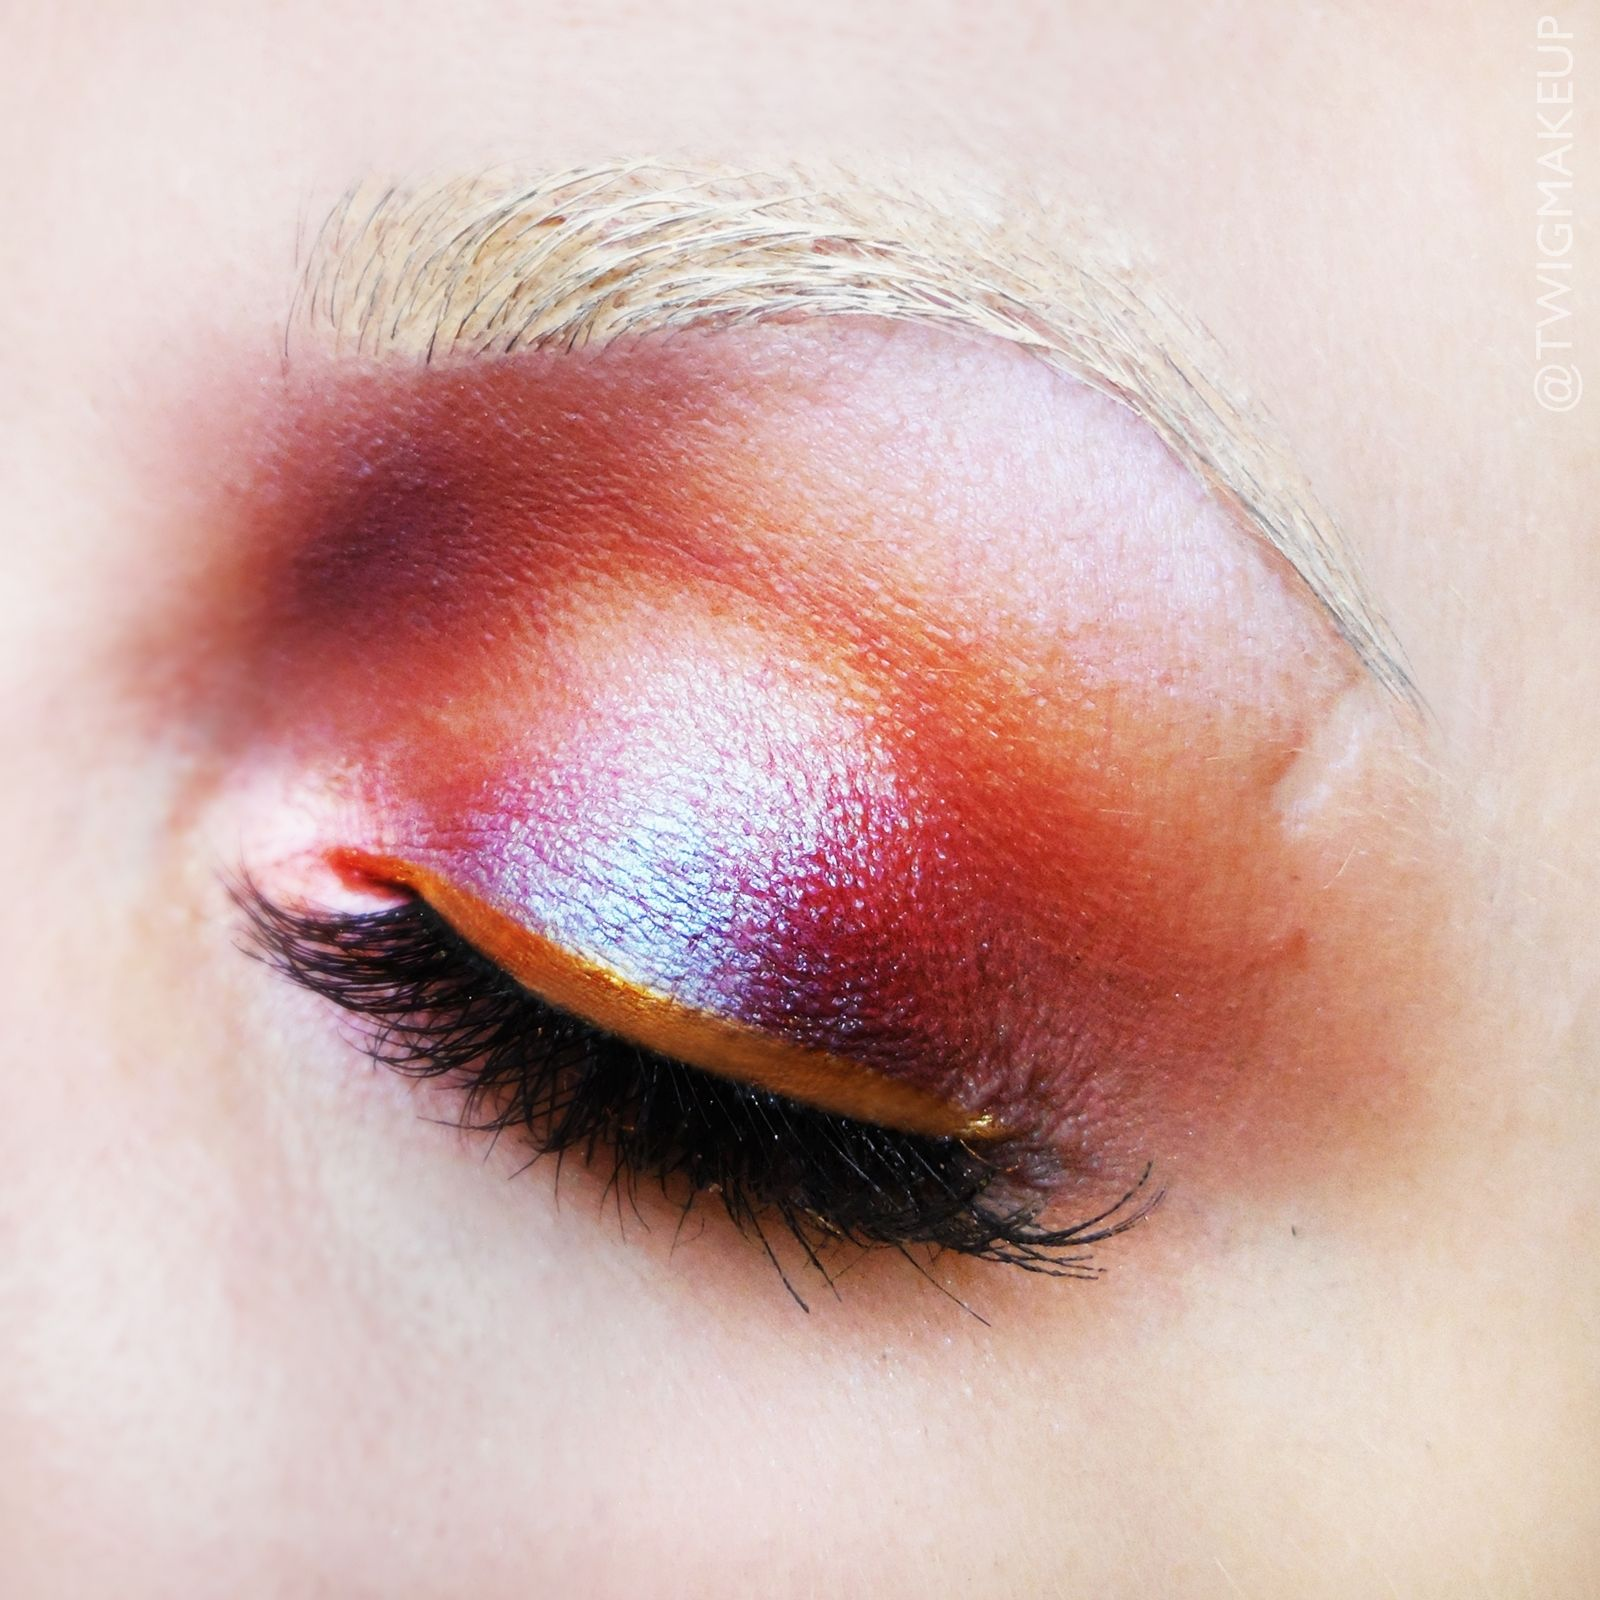 Makeup geek duochrome eyeshadows in blacklight and phantom embrace your cosmetic addition with makeup geek watch makeup video tutorials learn tips from the experts and even buy our makeup online baditri Gallery